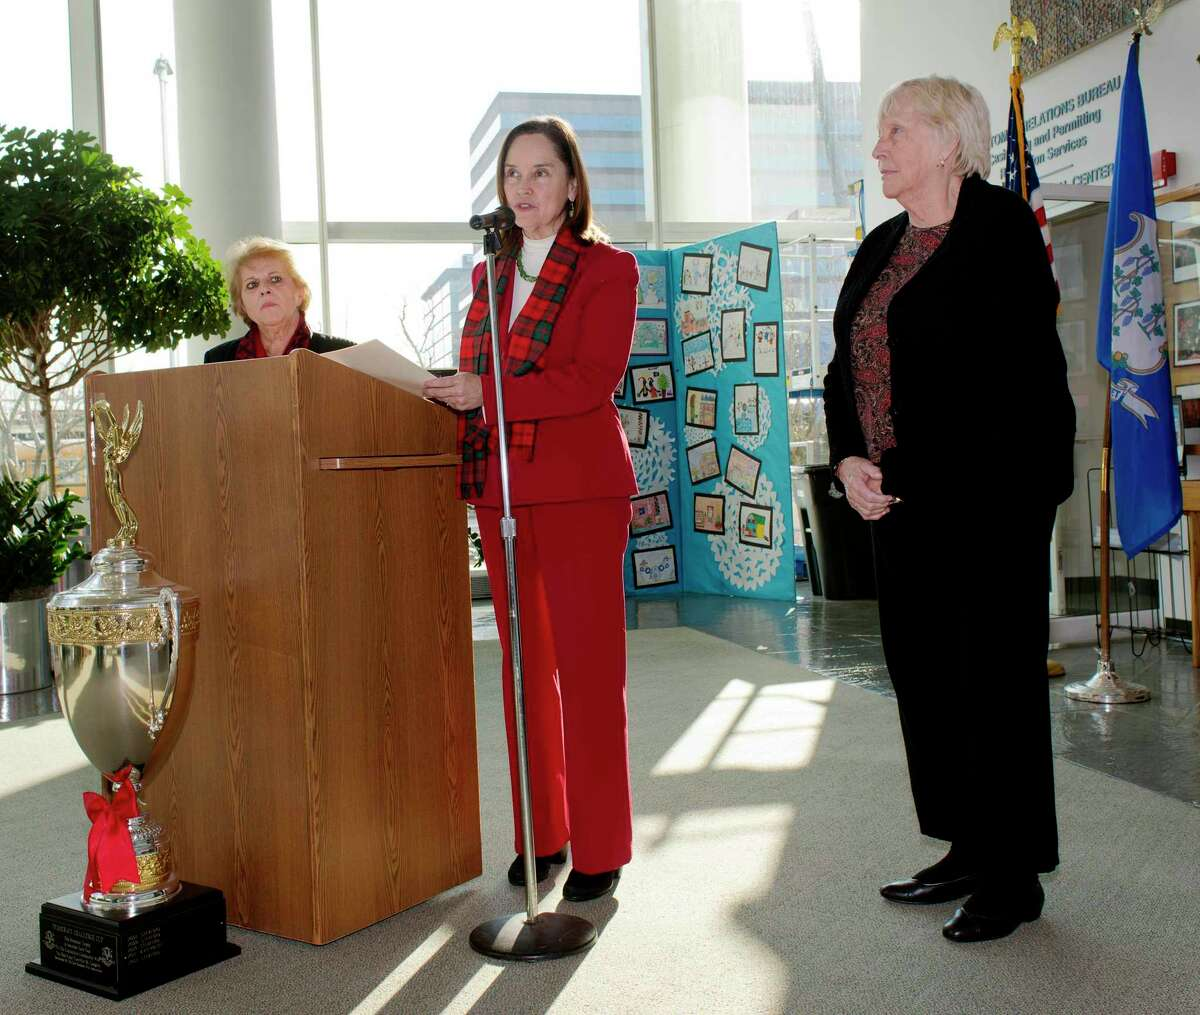 """Denise Merrill, Connecticut Secretary of the State, (center) presents the """"Democracy Cup"""" to Lucy Corelli (left), Stamford CT republican registrar of voters, and Alice Fortunato (right), Stamford CT democratic registrar of voters. The Democracy Cup was awarded to Stamford because they had the highest percentage of voter turnout for a large city on this years election day. The ceremony was held in the lobby of the Government Center, Stamford, CT on Tuesday December 18th, 2012"""